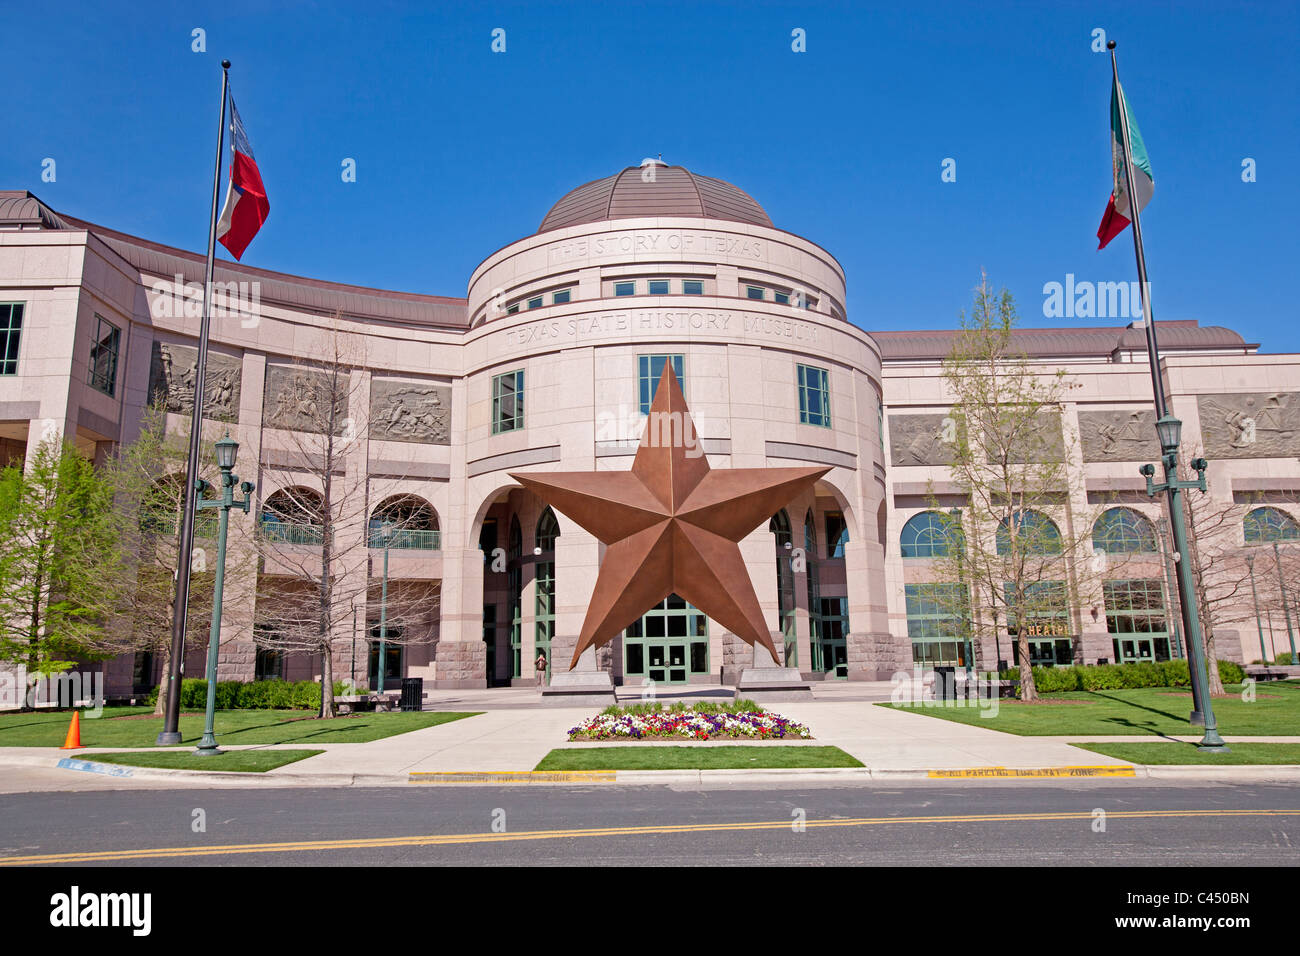 USA, Texas, Austin, Bob Bullock Texas State History Museum, lone star sculpture outside museum Stock Photo